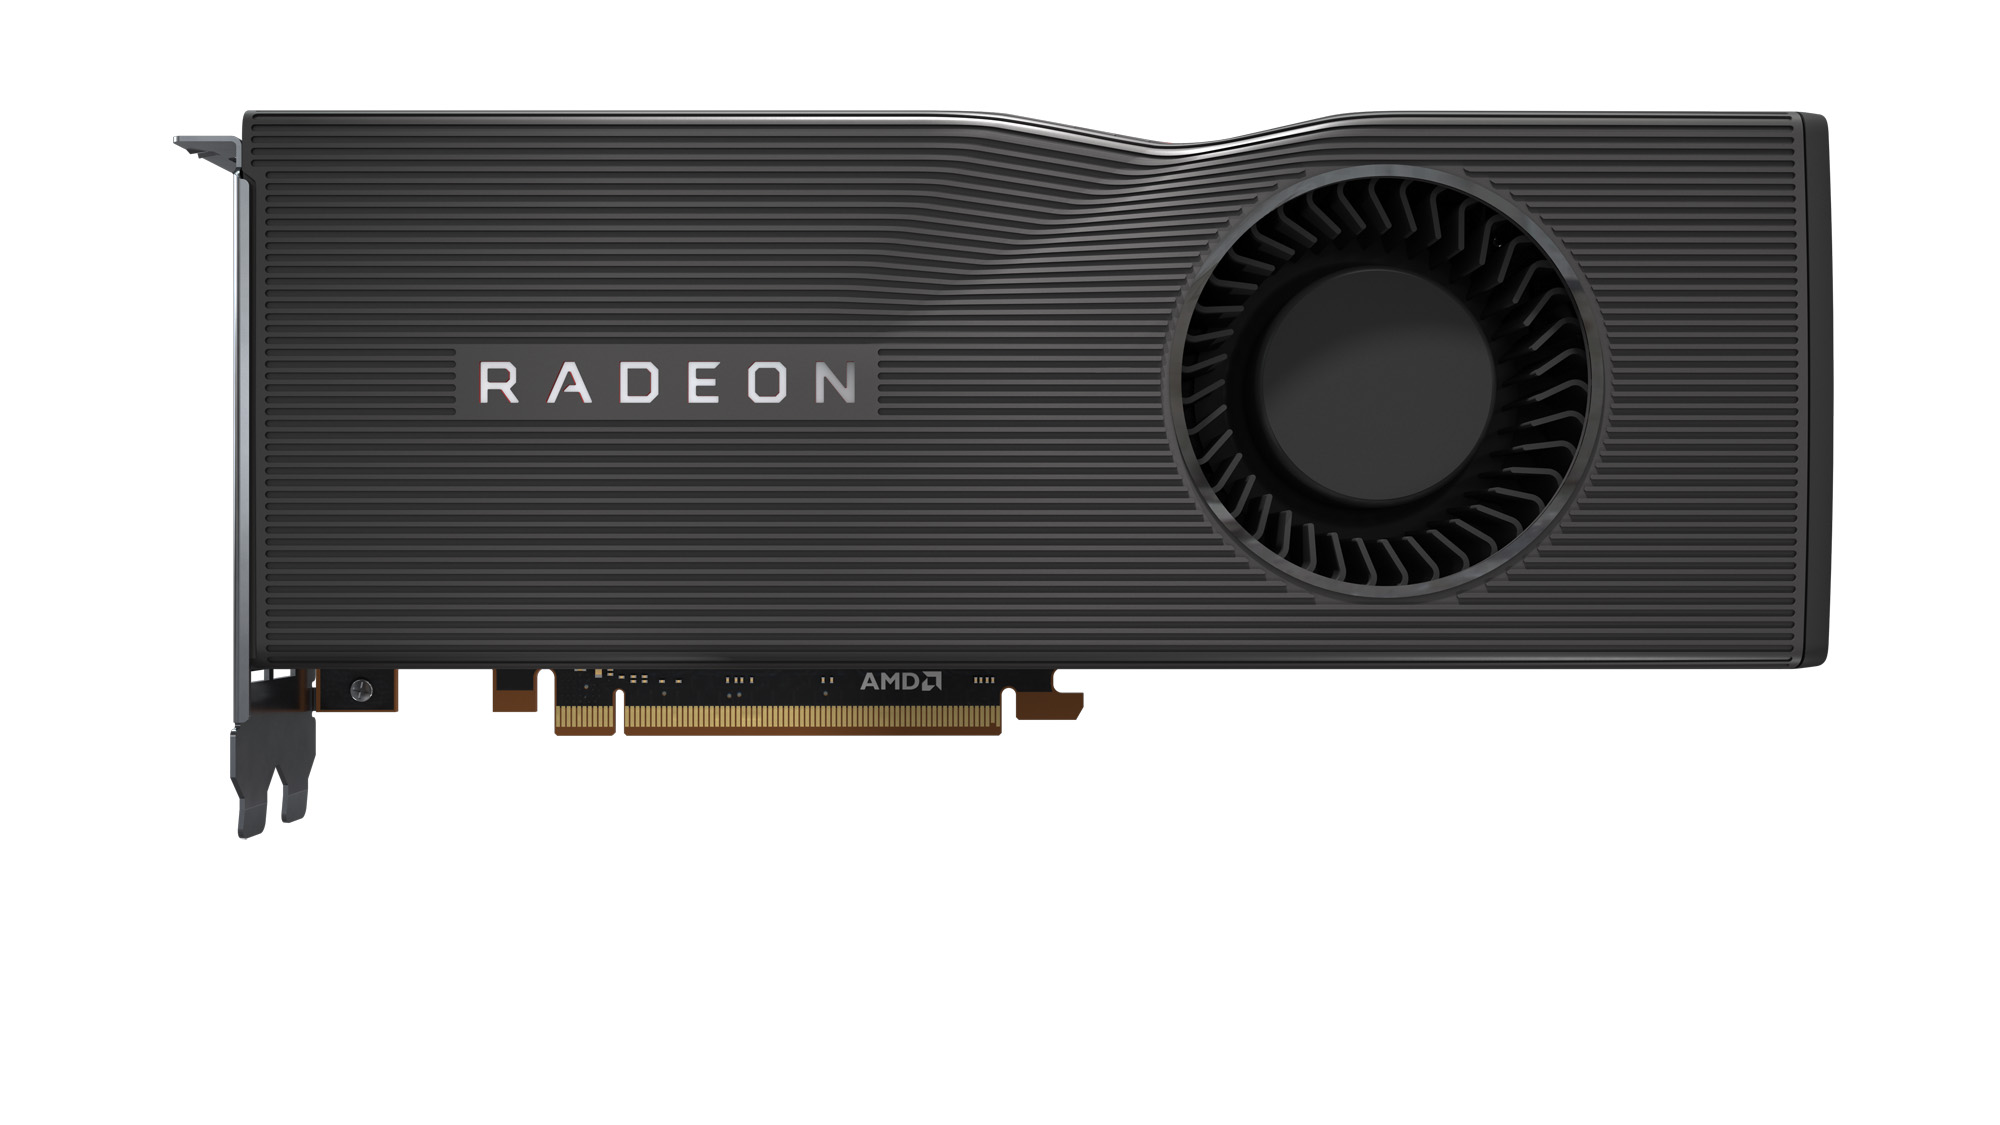 AMD Radeon RX 5700 XT and RX 5700 Graphics Card Review